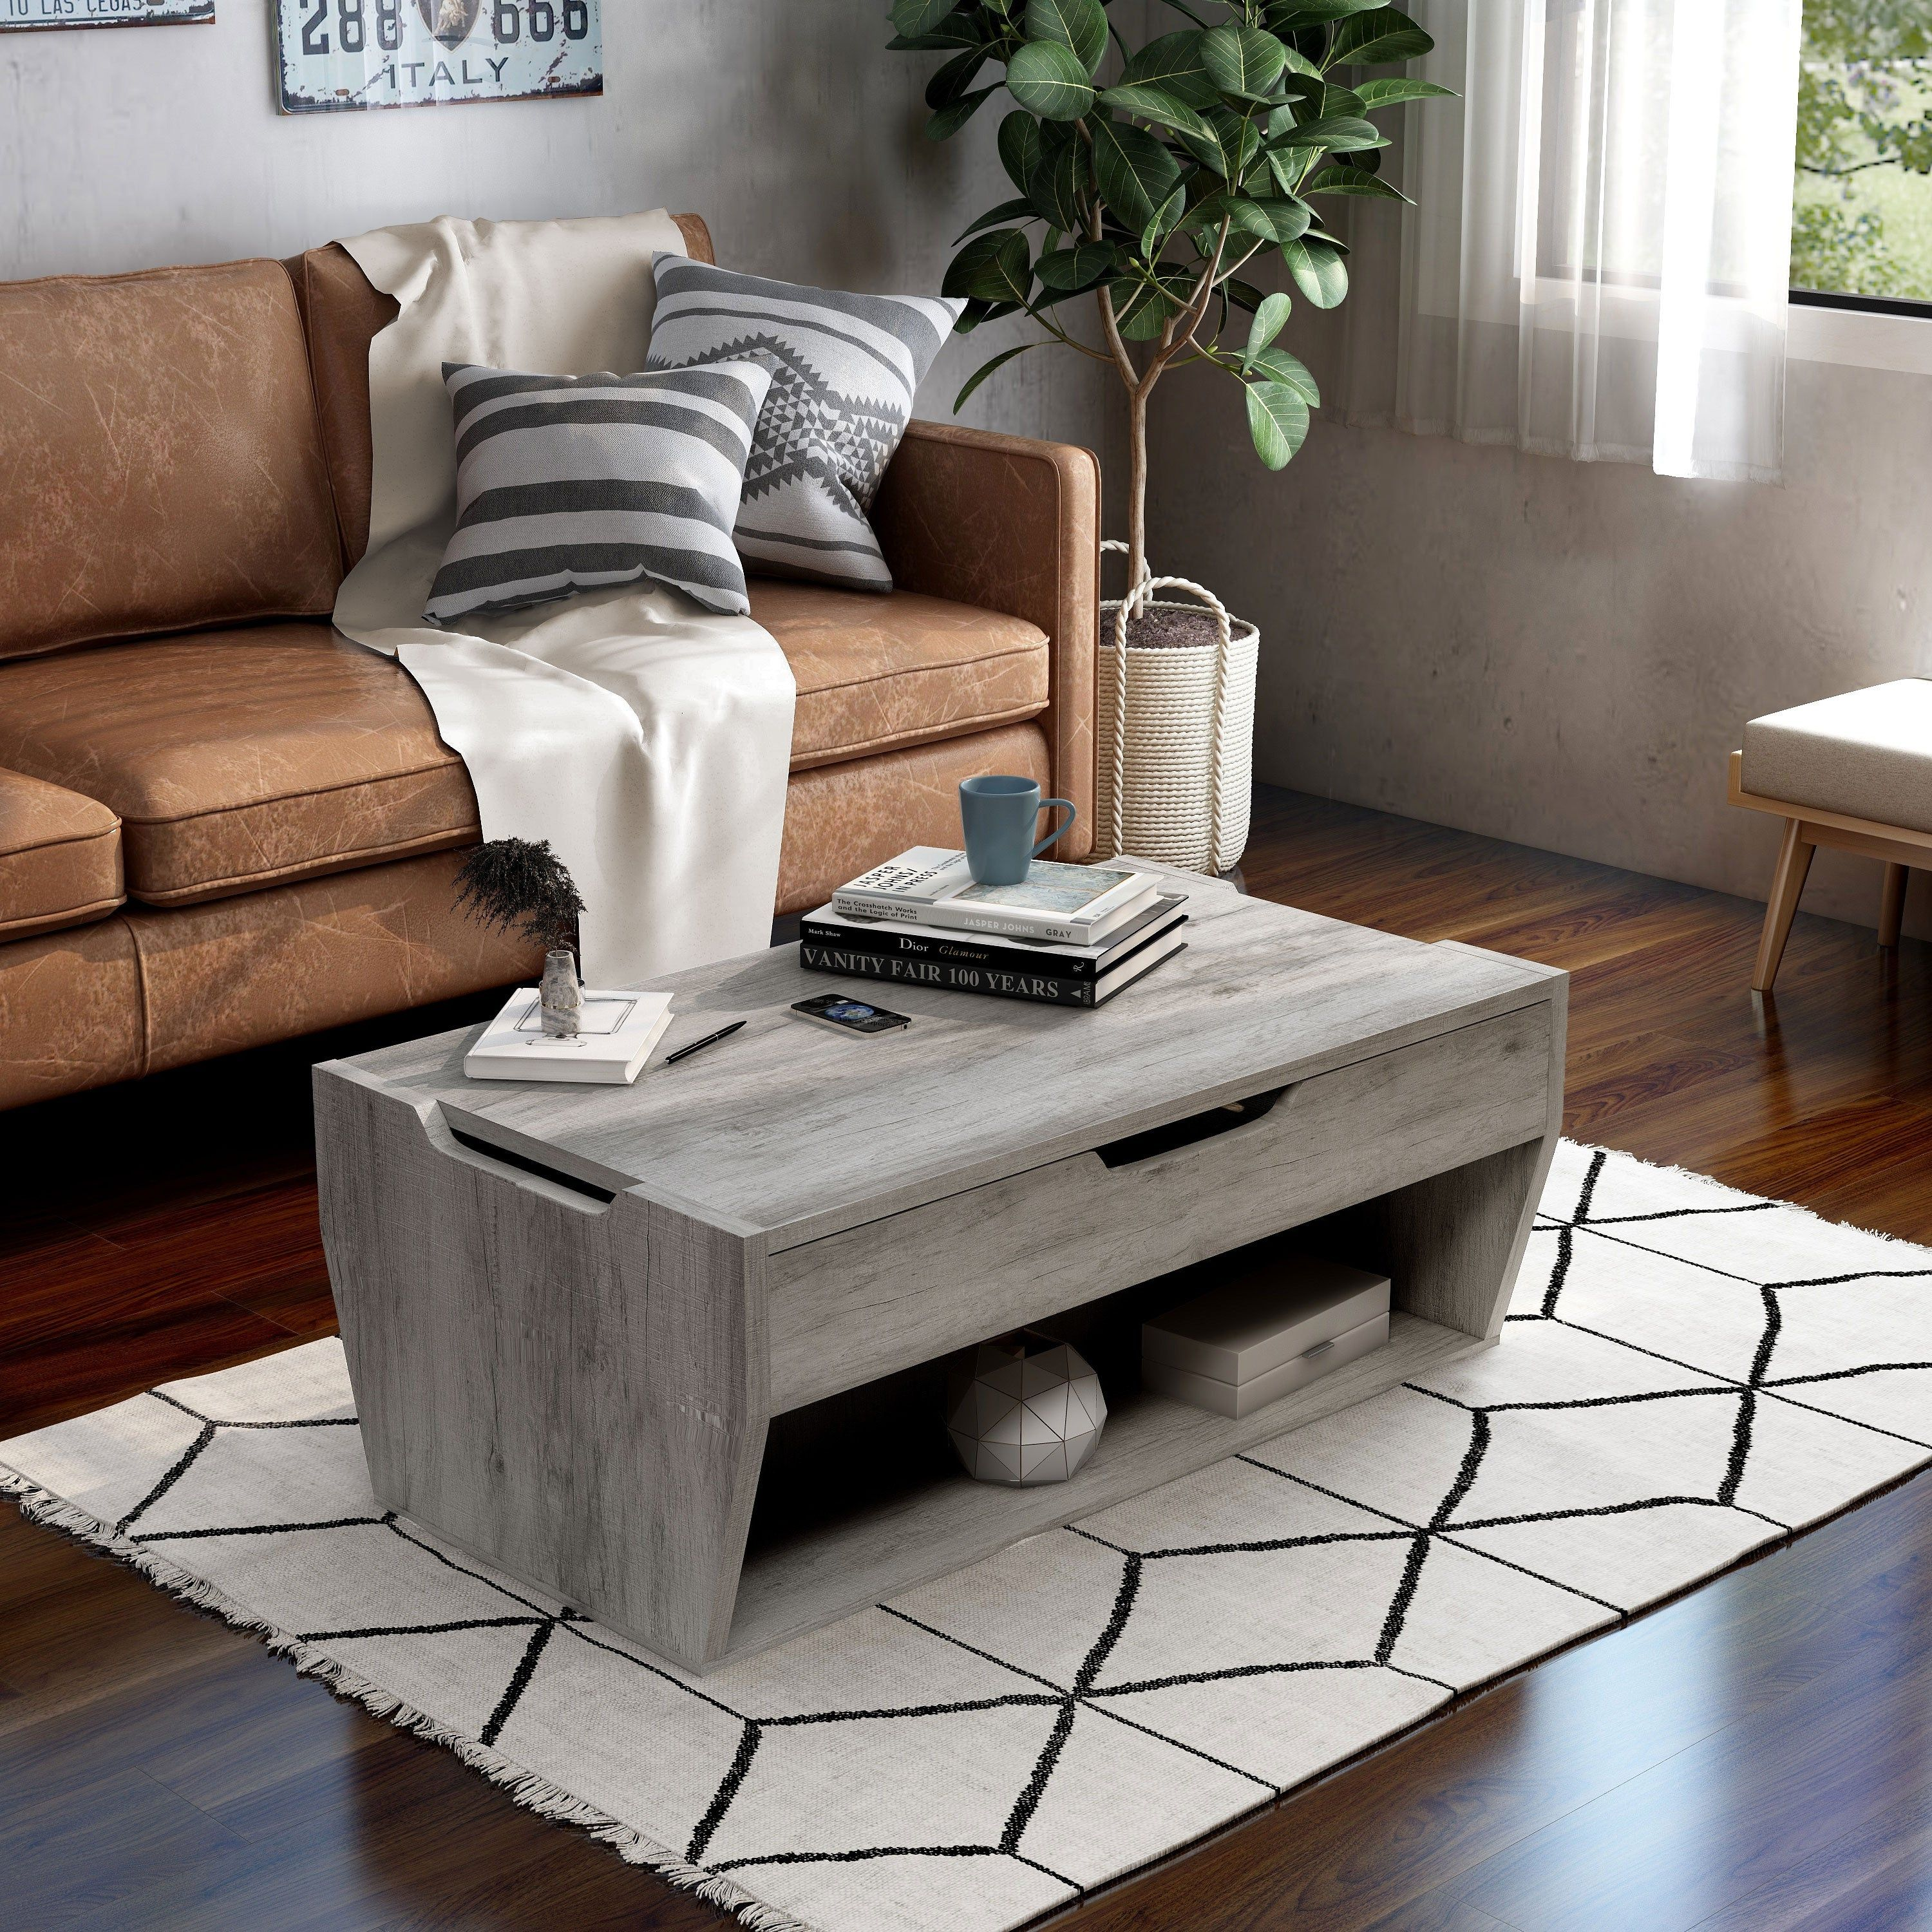 15 Beautiful Lift Top Coffee Tables You Can Buy Cool Things To Buy 247 Coffee Table Lift Top Coffee Table Coffee Table Vintage [ 3000 x 3000 Pixel ]